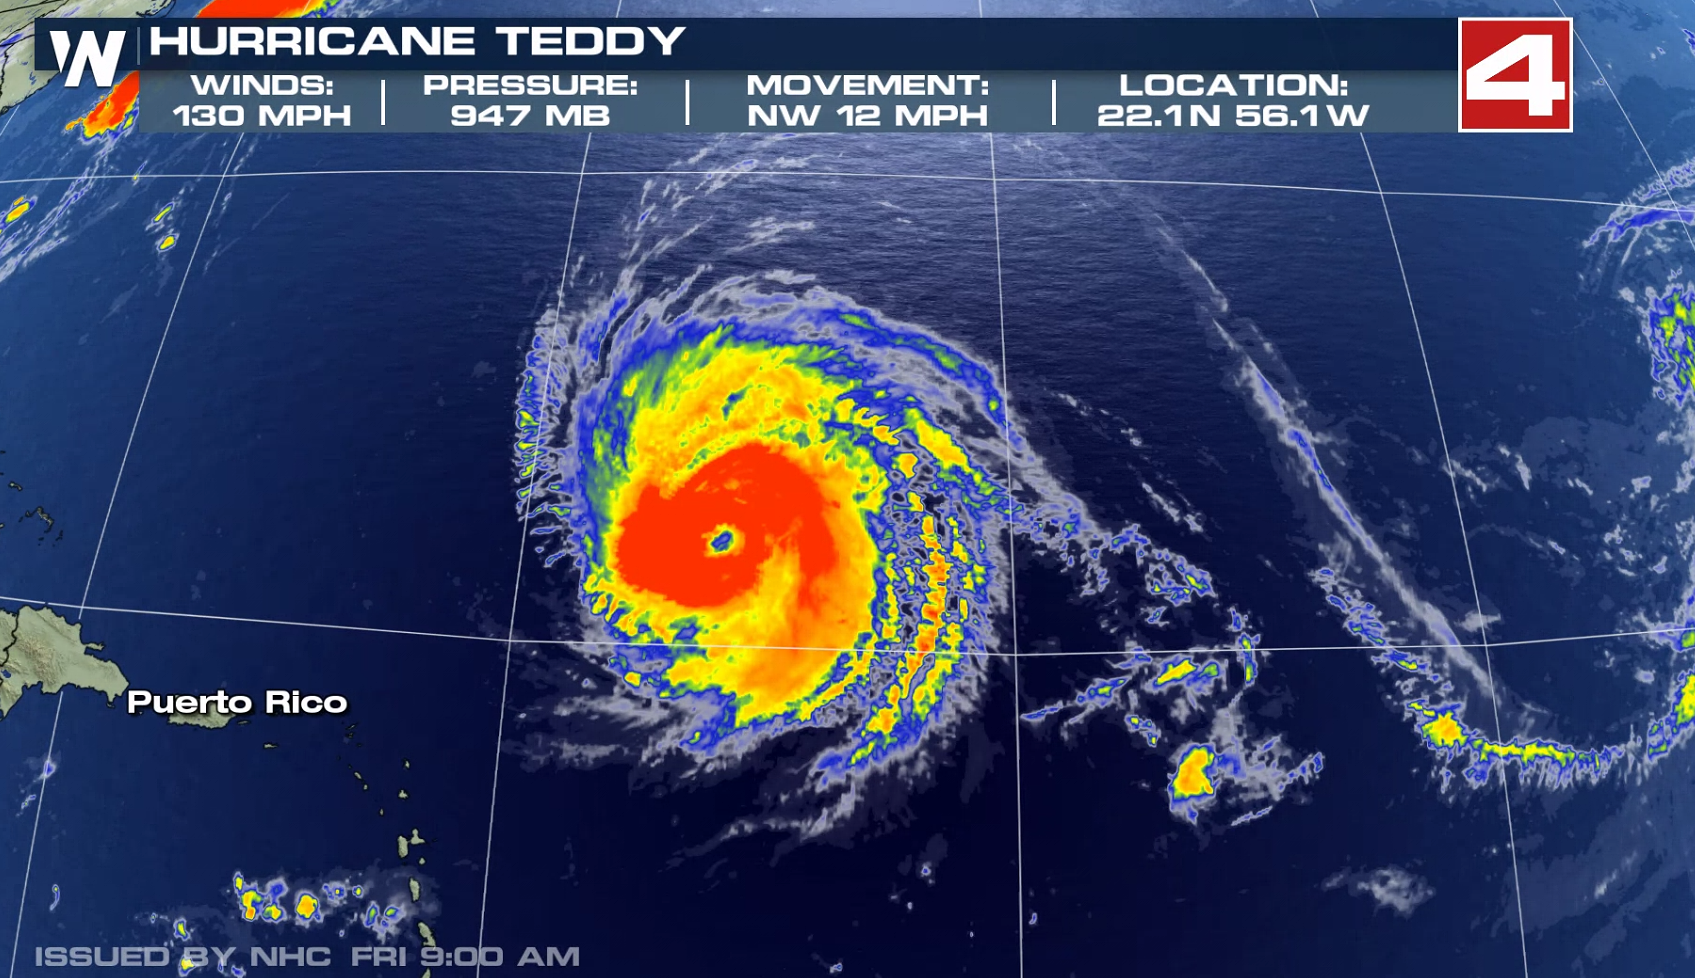 Tropical Storm Warnings Issued for Bermuda as Teddy Draws Near